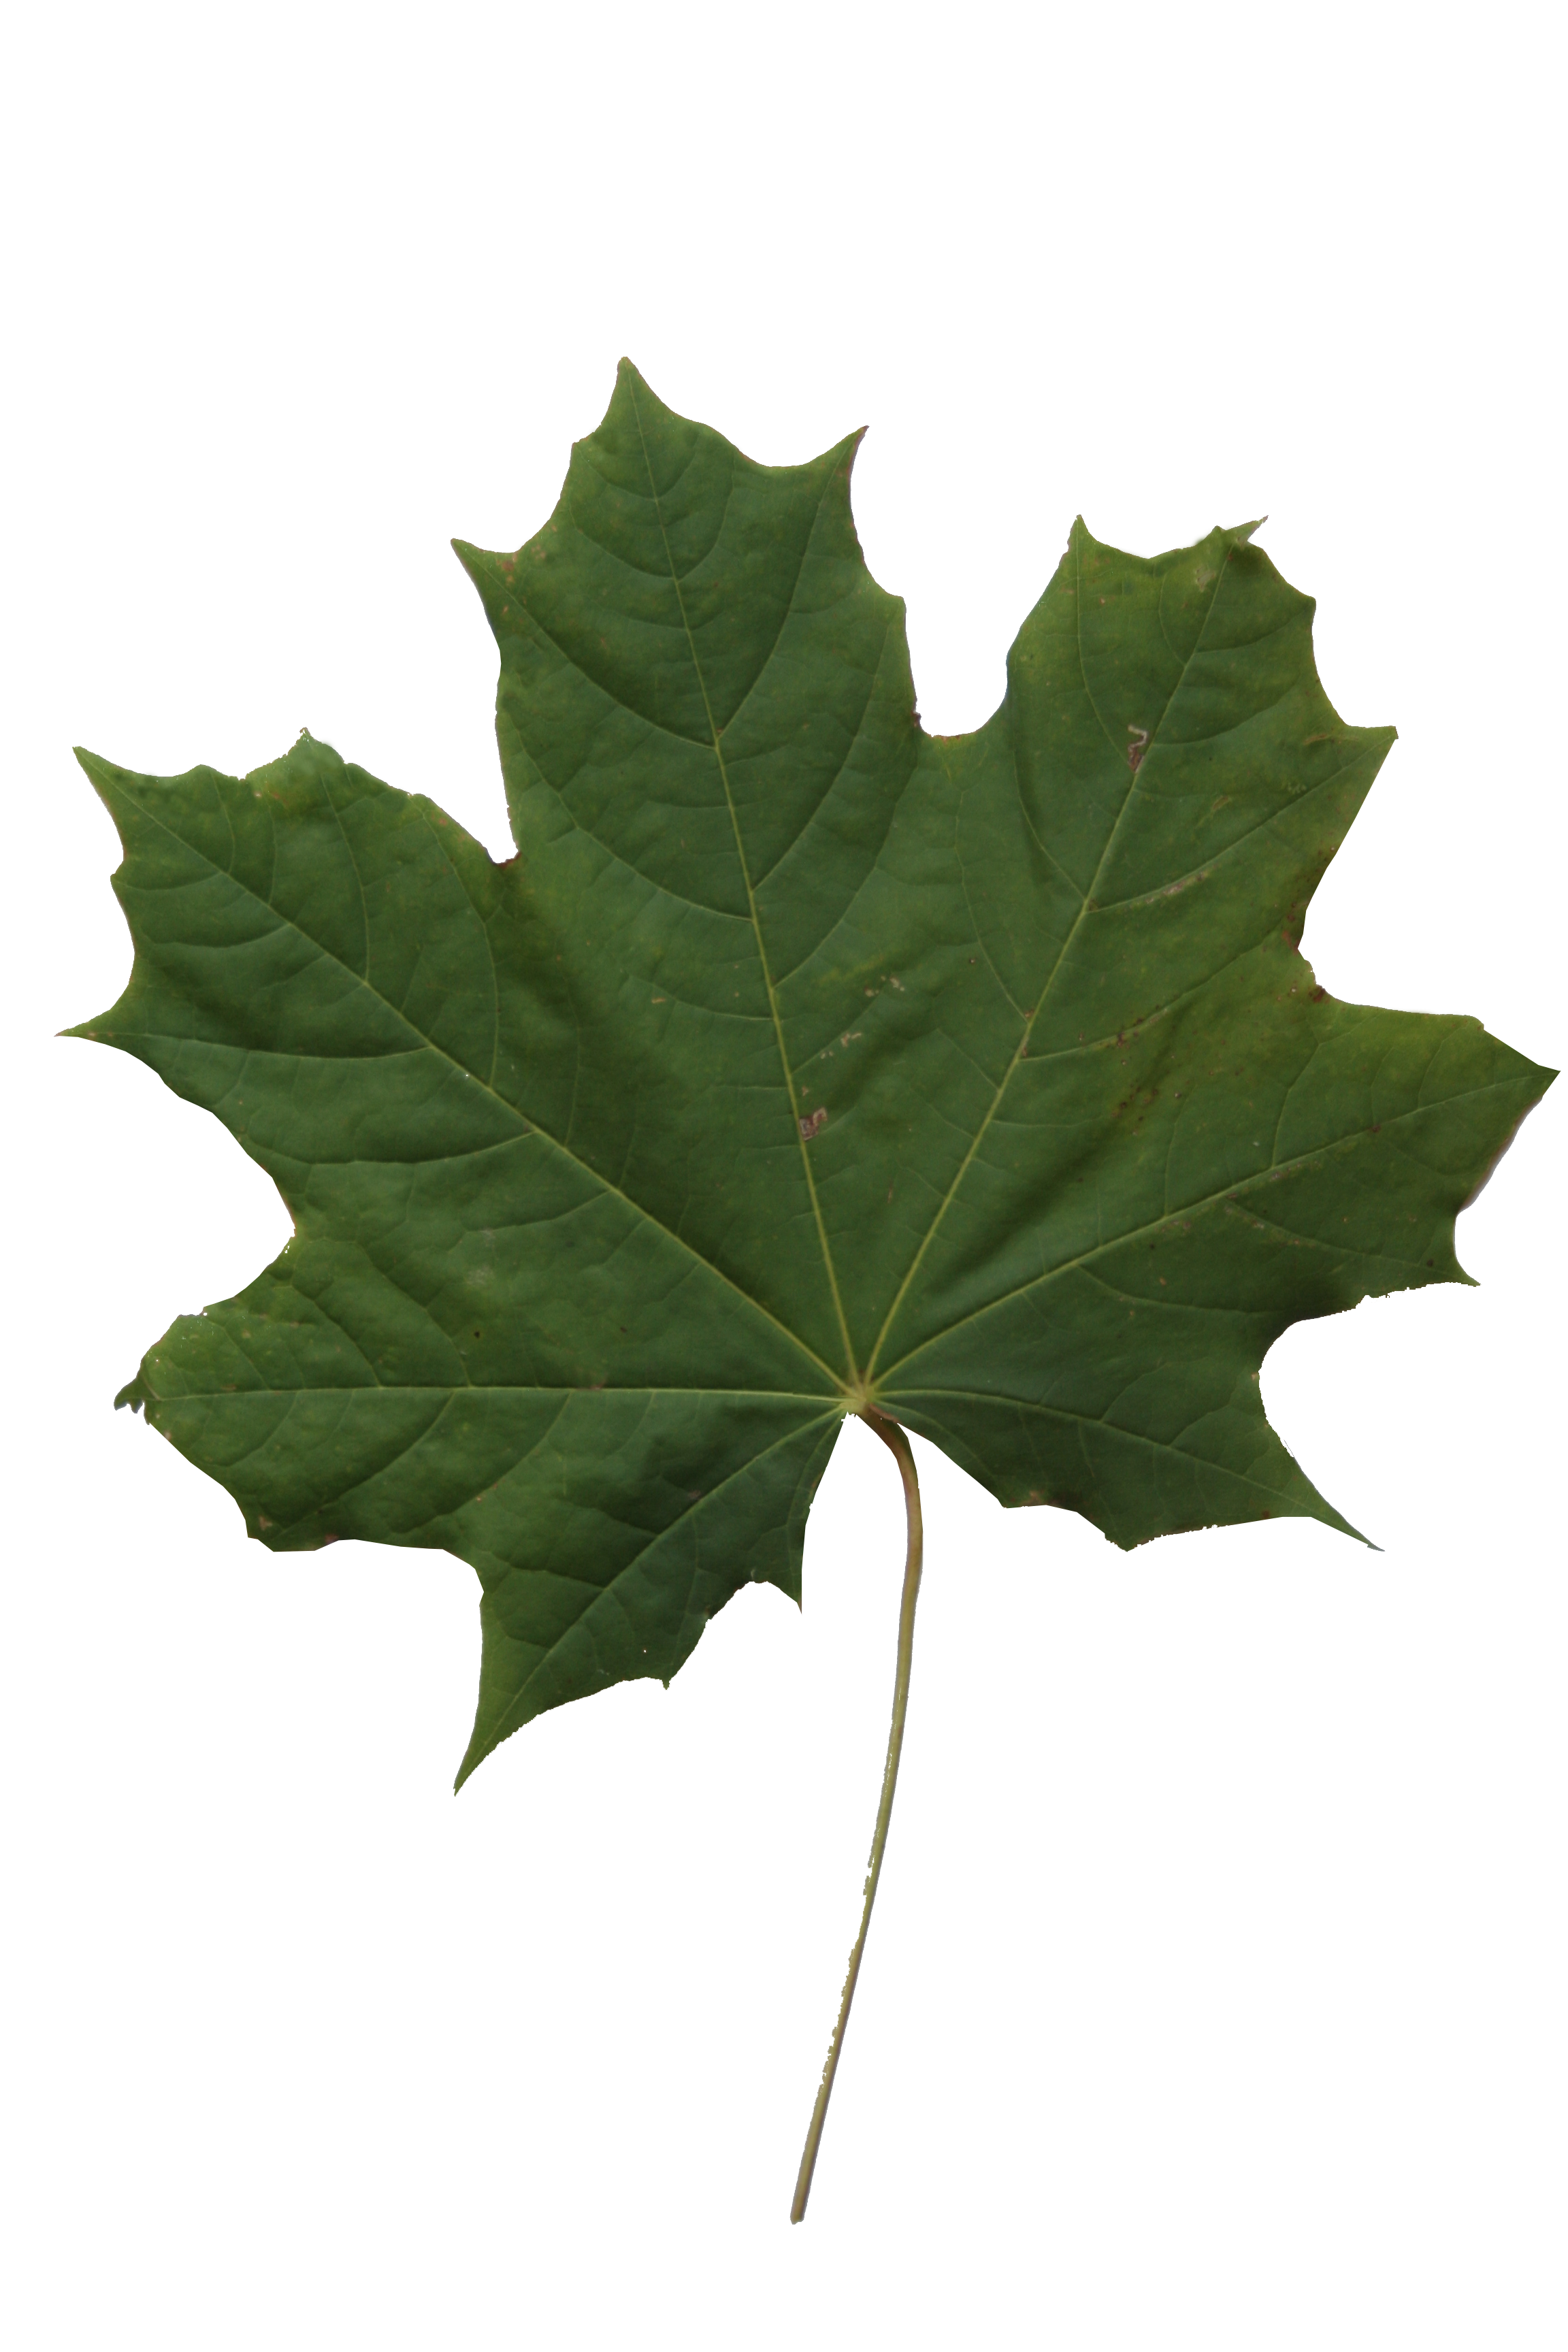 Leaf texture png. Maple free cut out